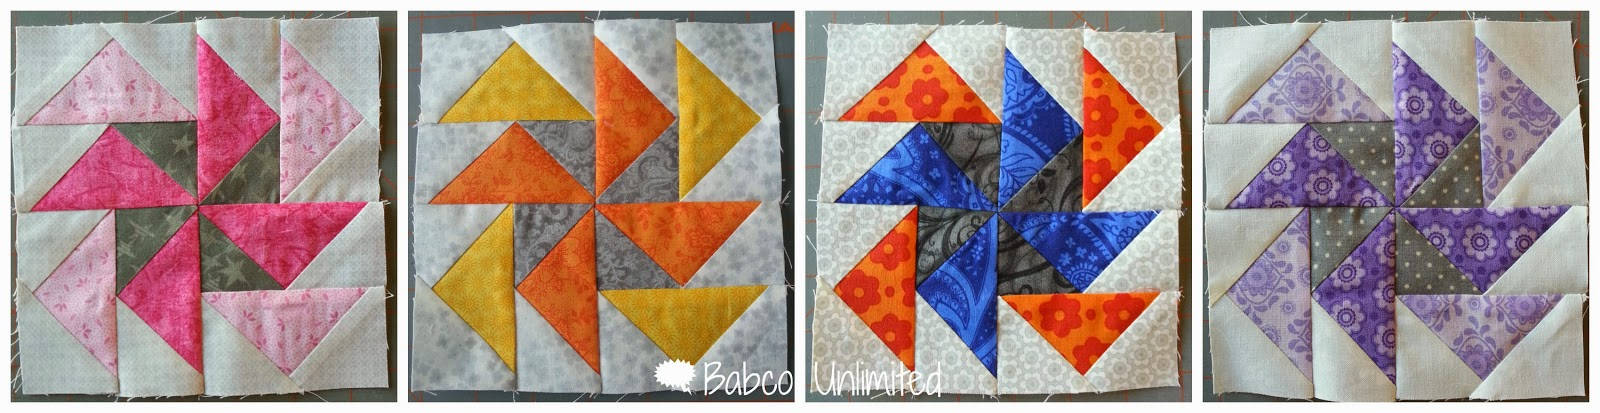 BabcoUnlimited.blogspot.com - Pinwheel Quilt Blocks